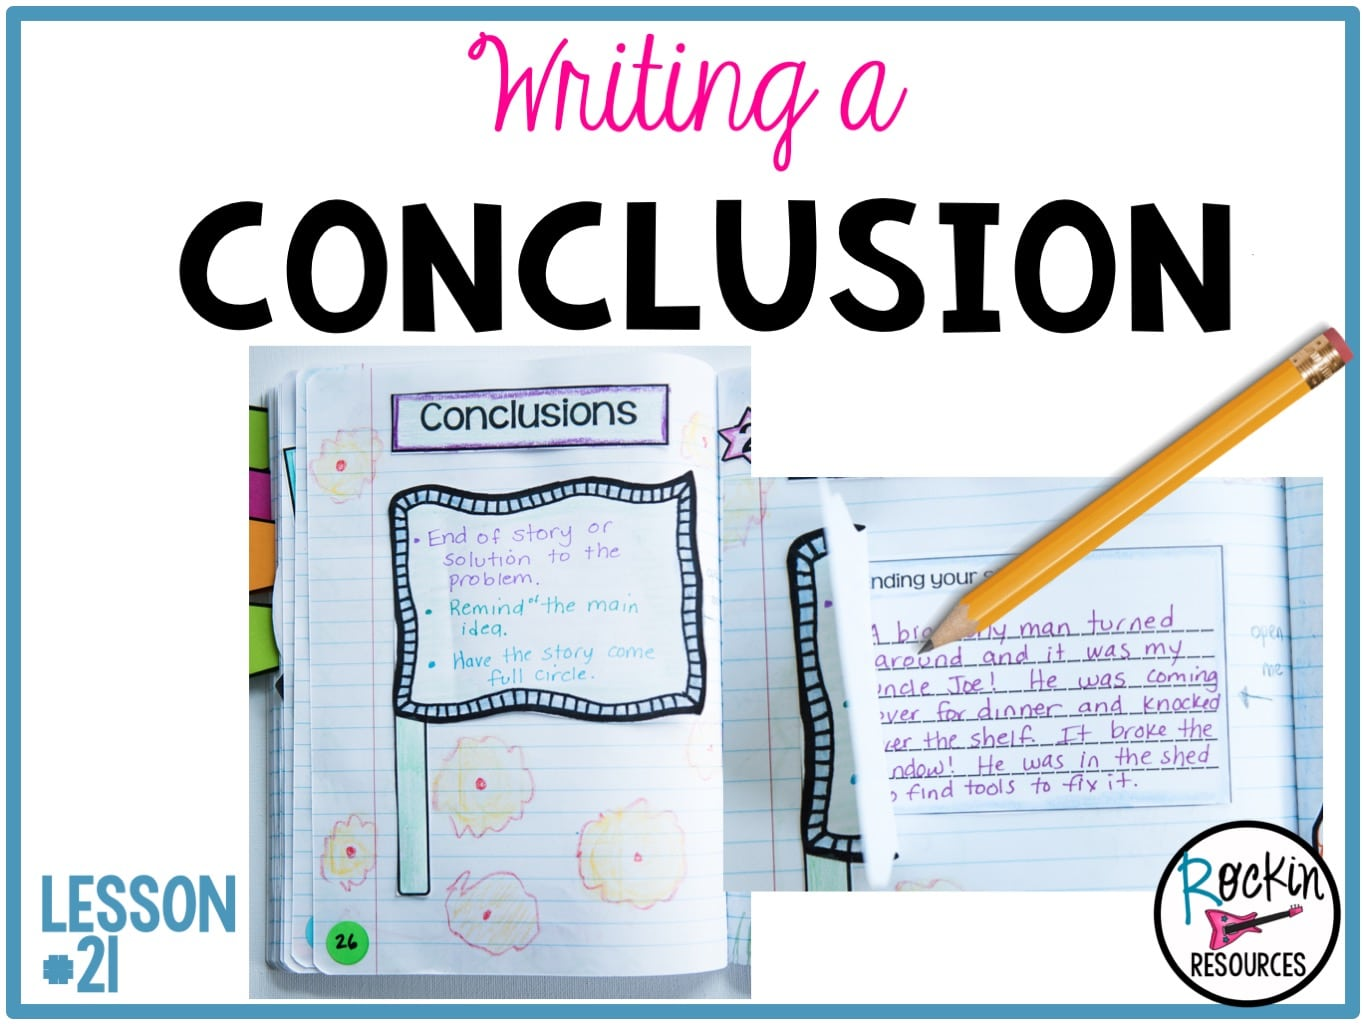 writing mini lesson  21